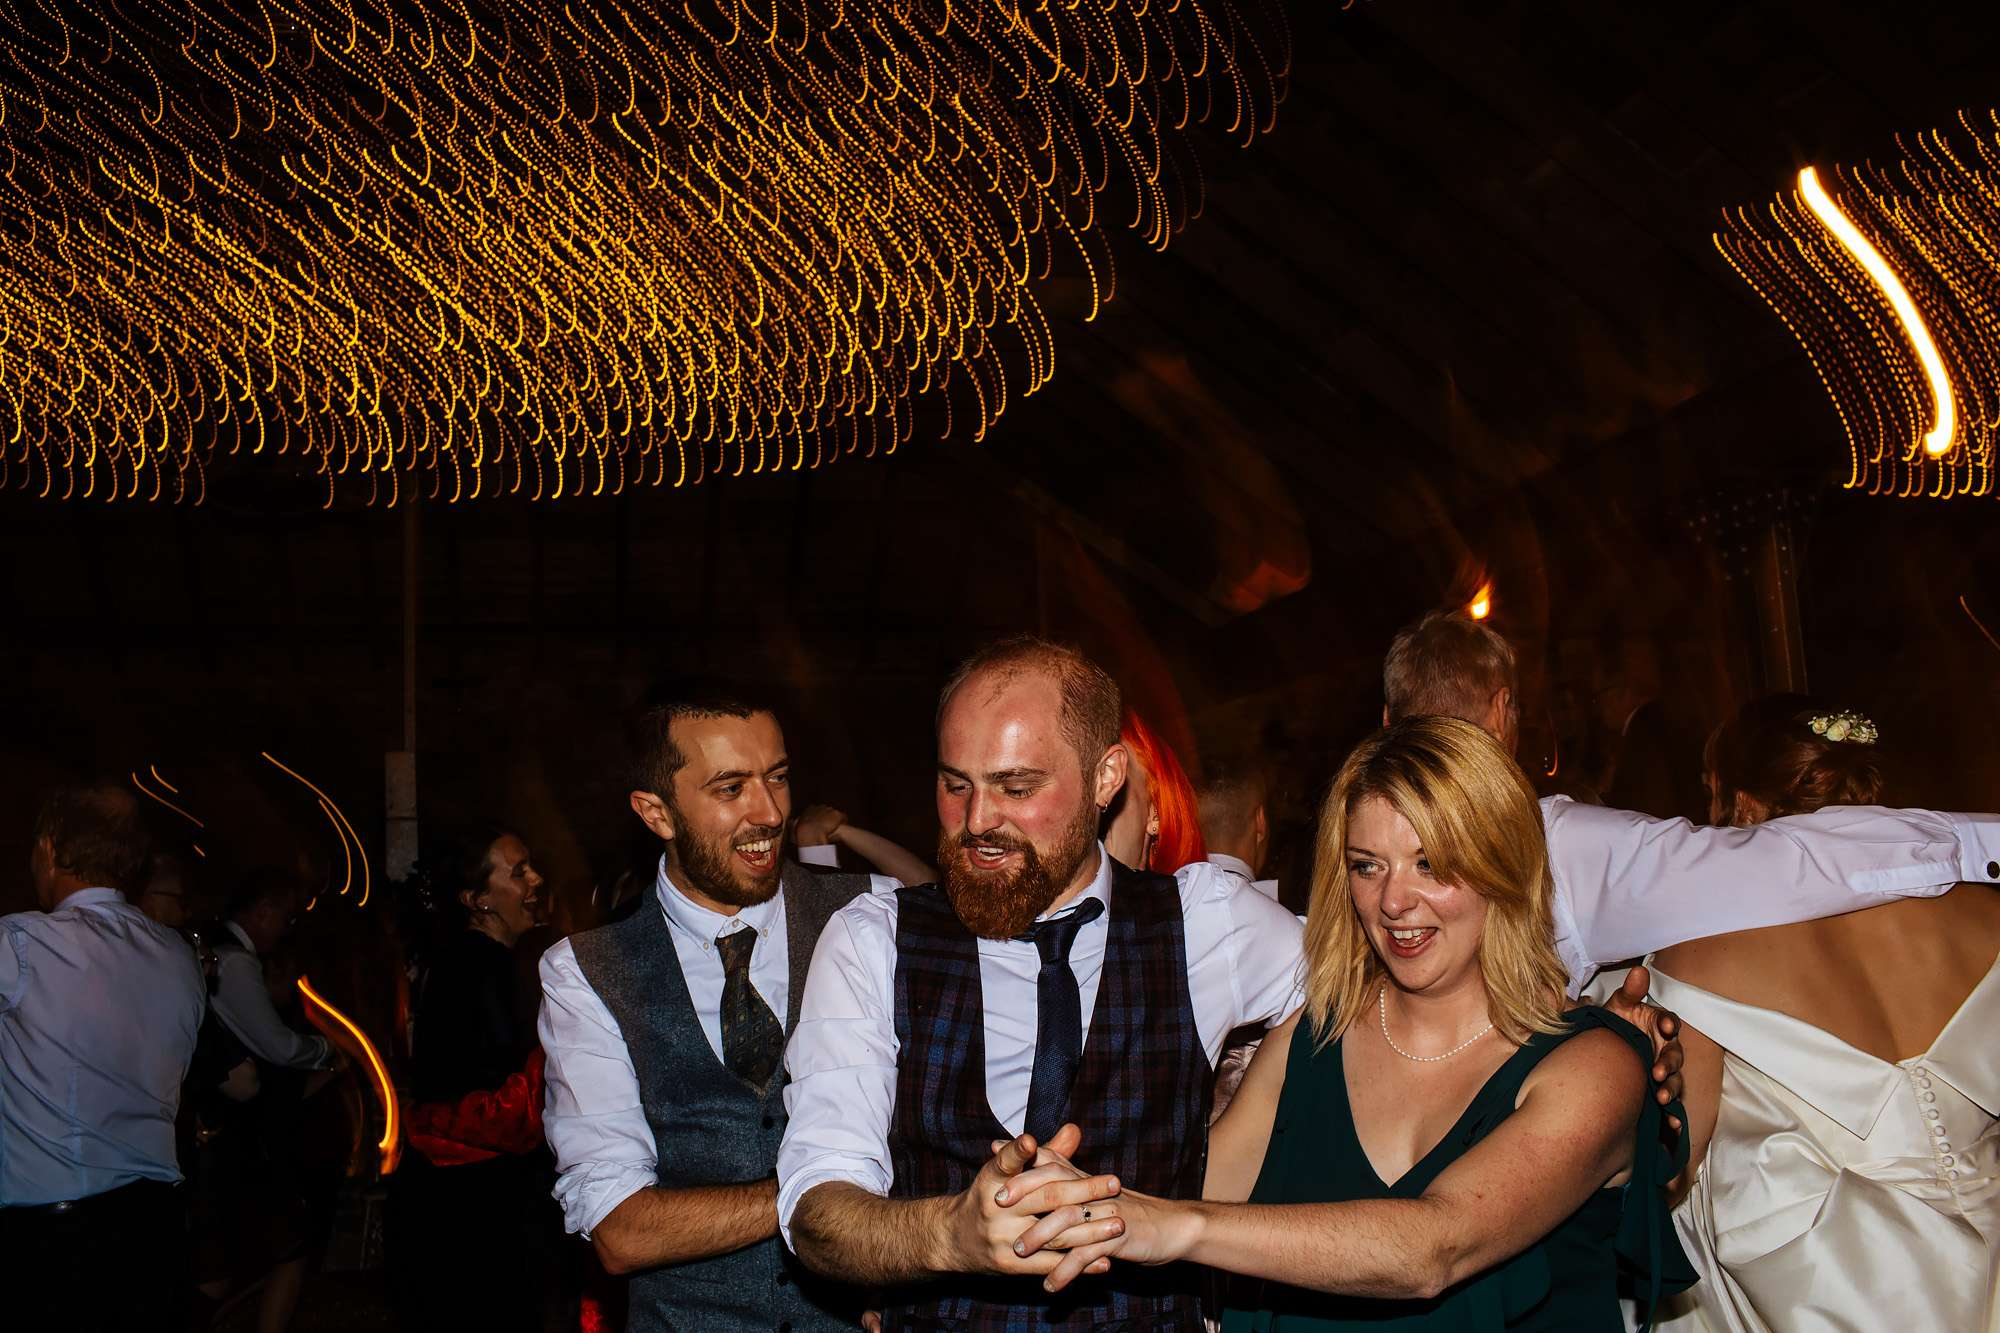 Ceilidh dancing at a wedding at The Rhynd Leuchars